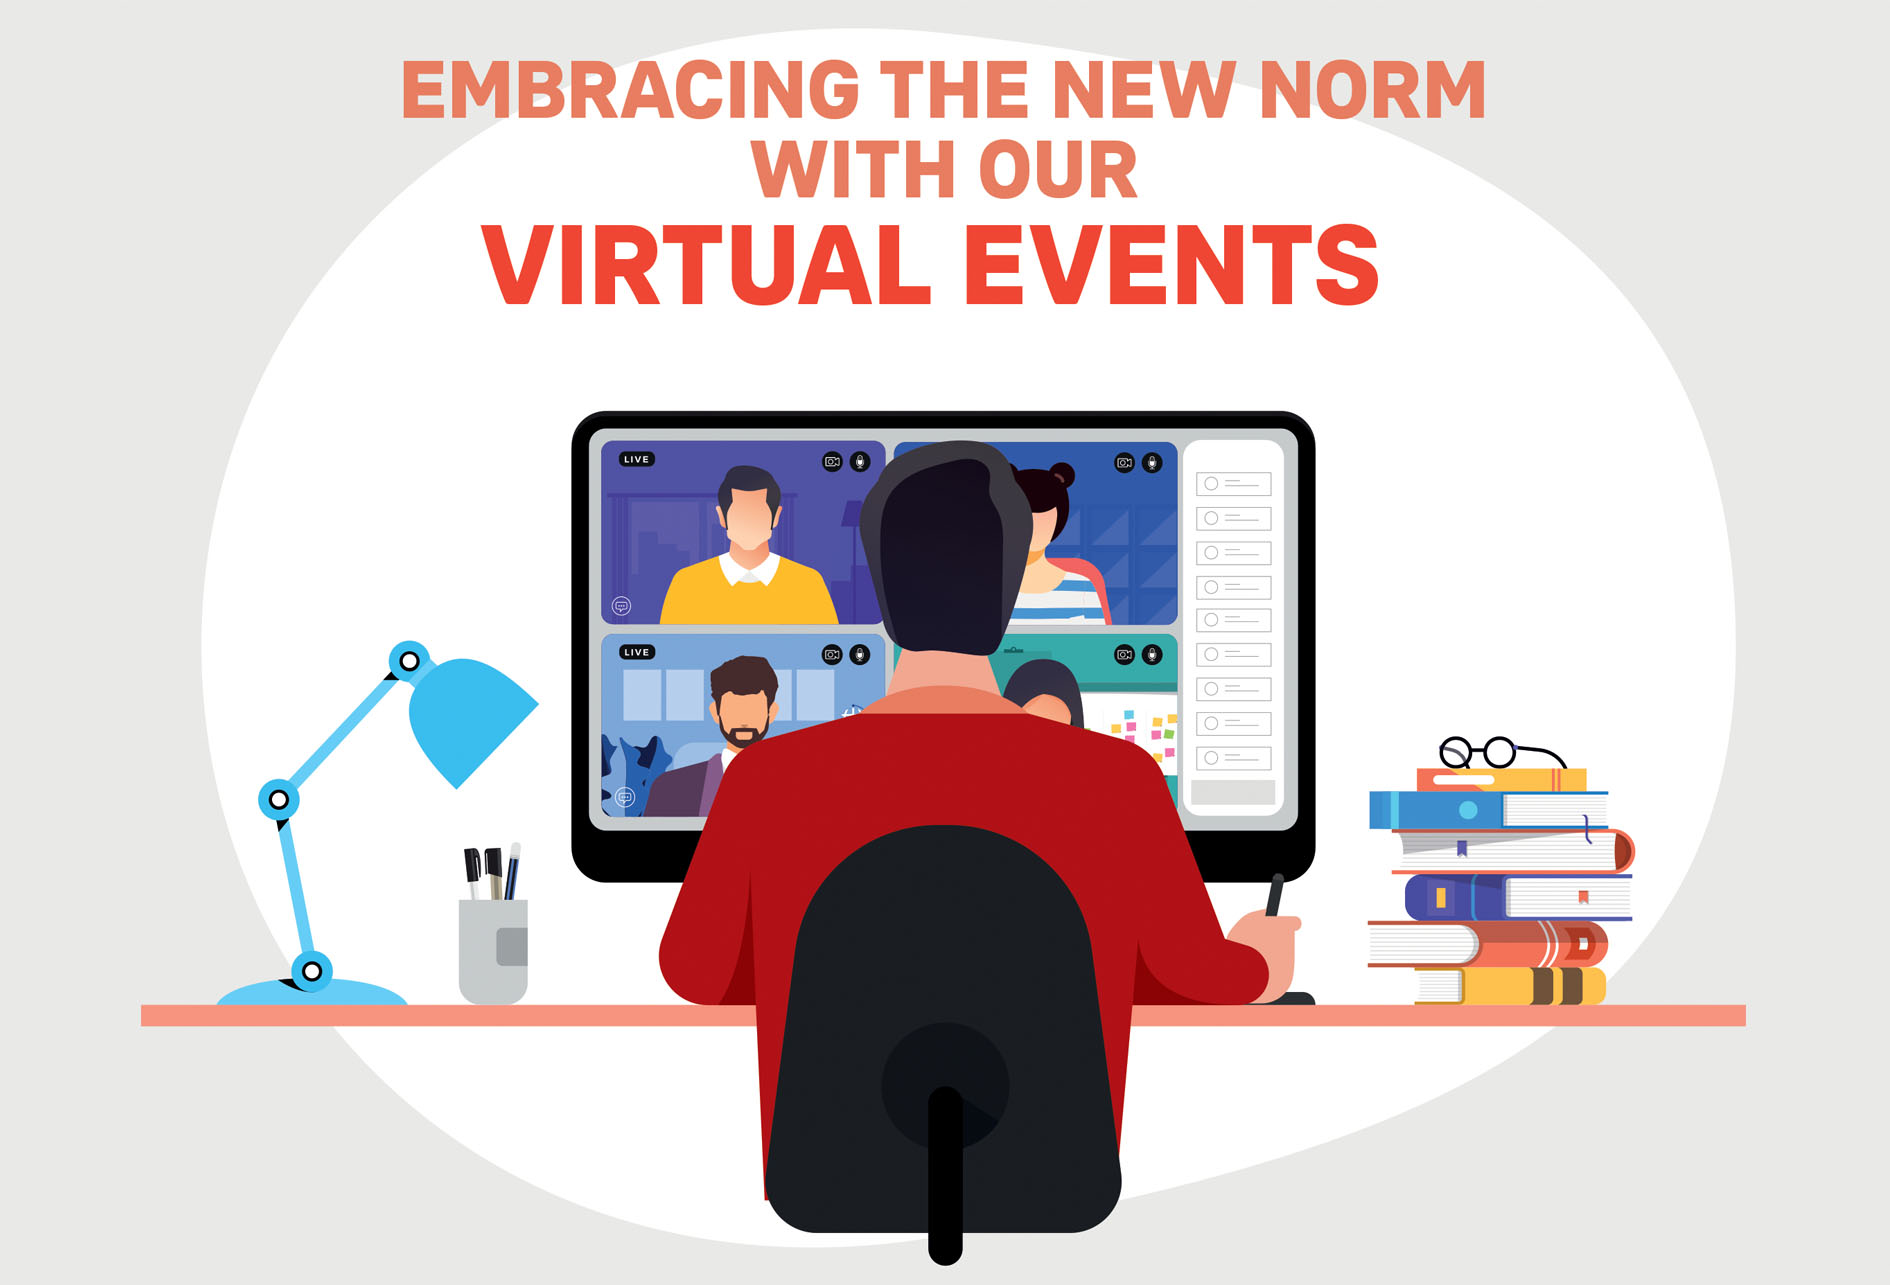 Embracing the new norm with our virtual events